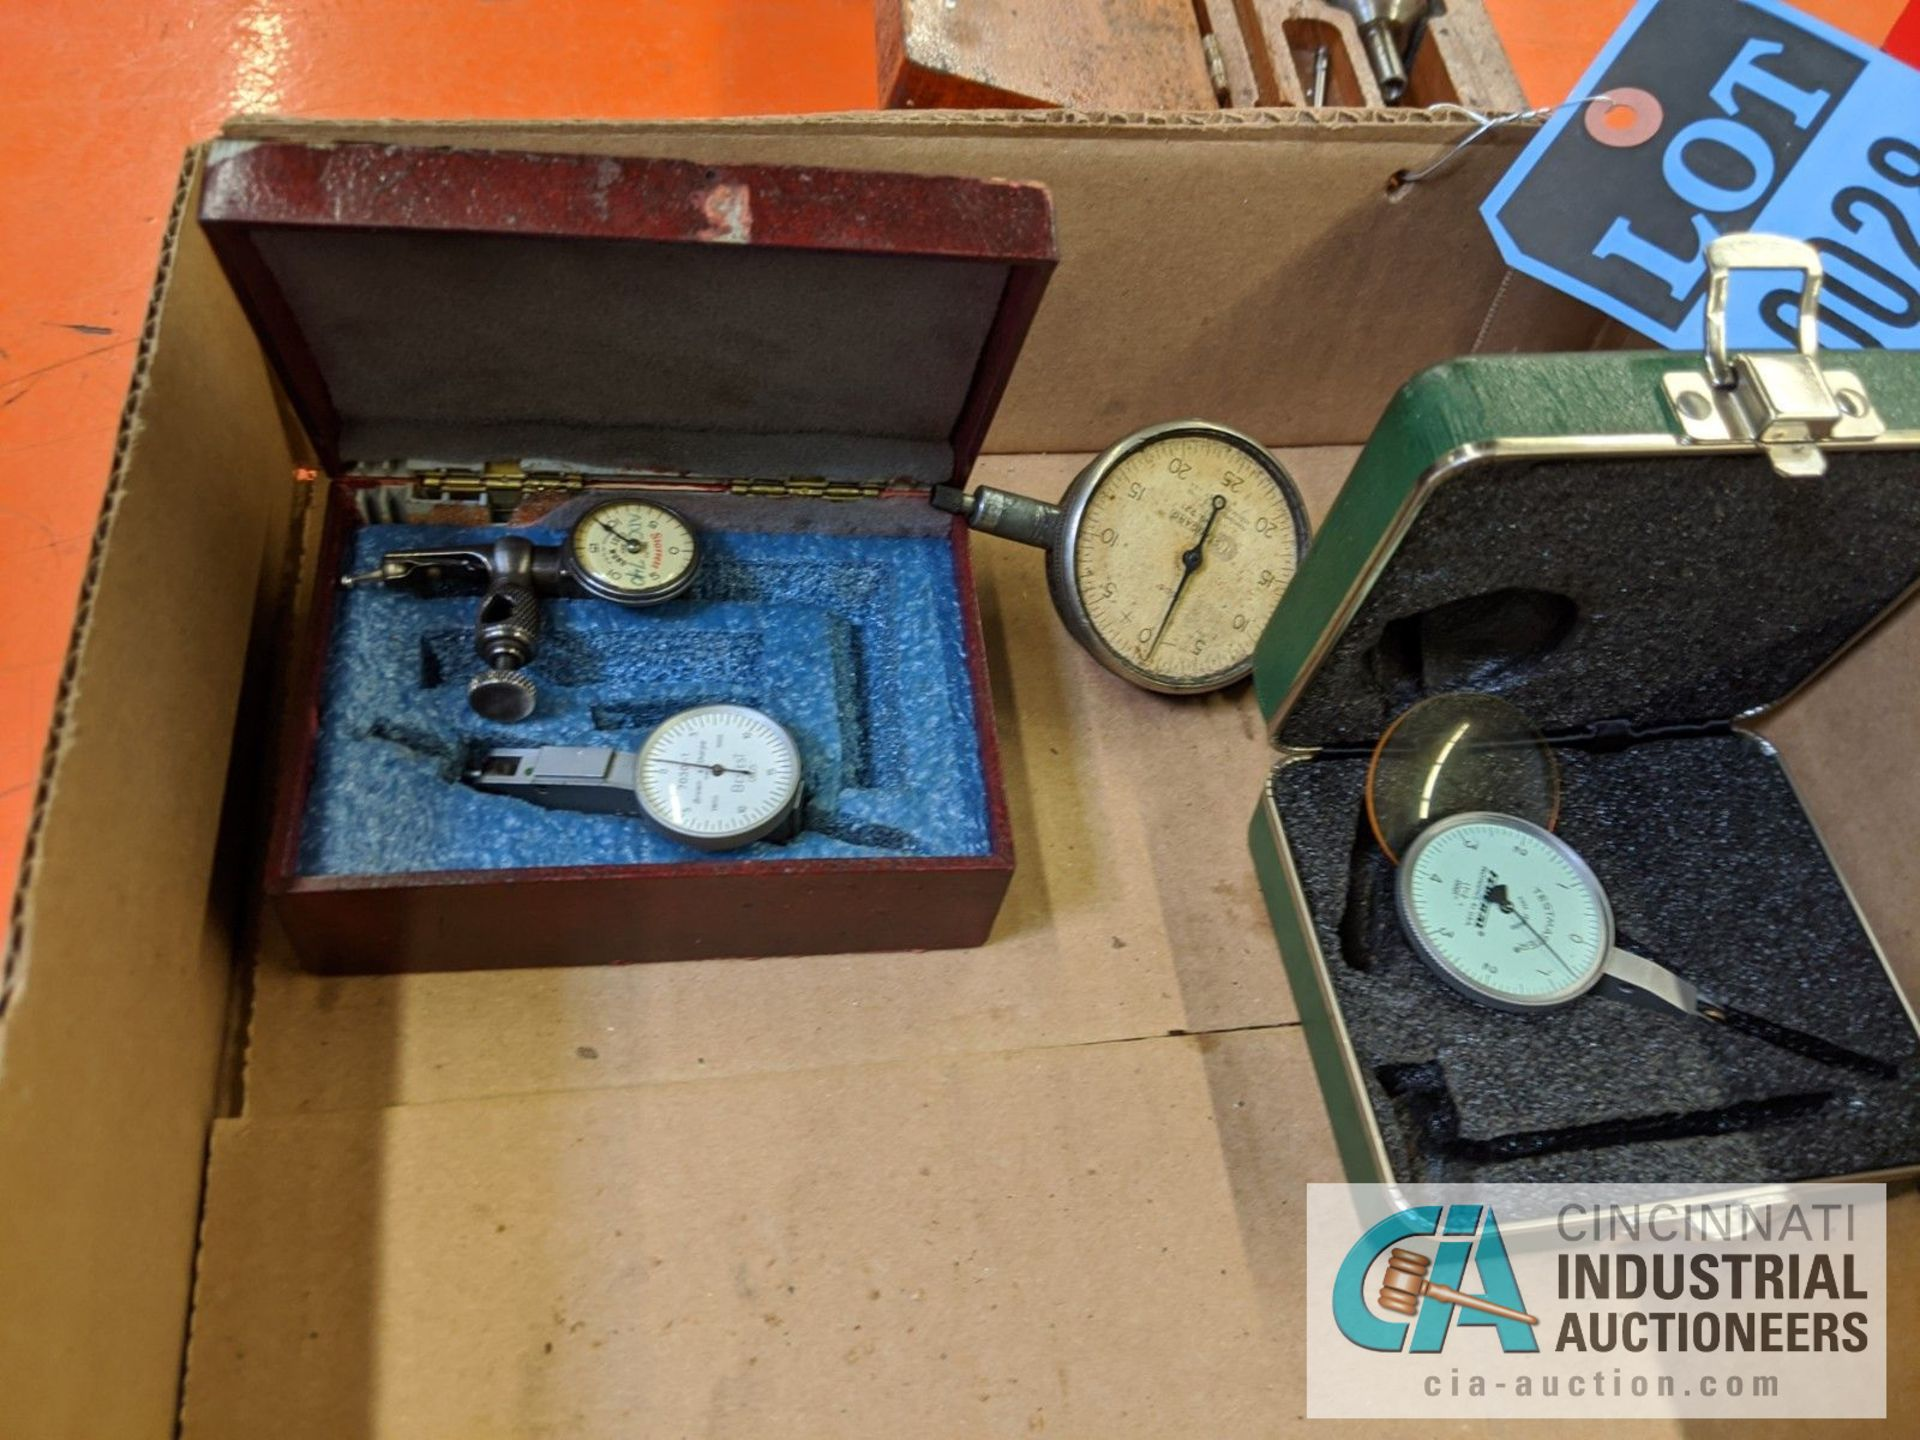 (LOT) ASSORTED DIAL INDICATORS - Image 5 of 7